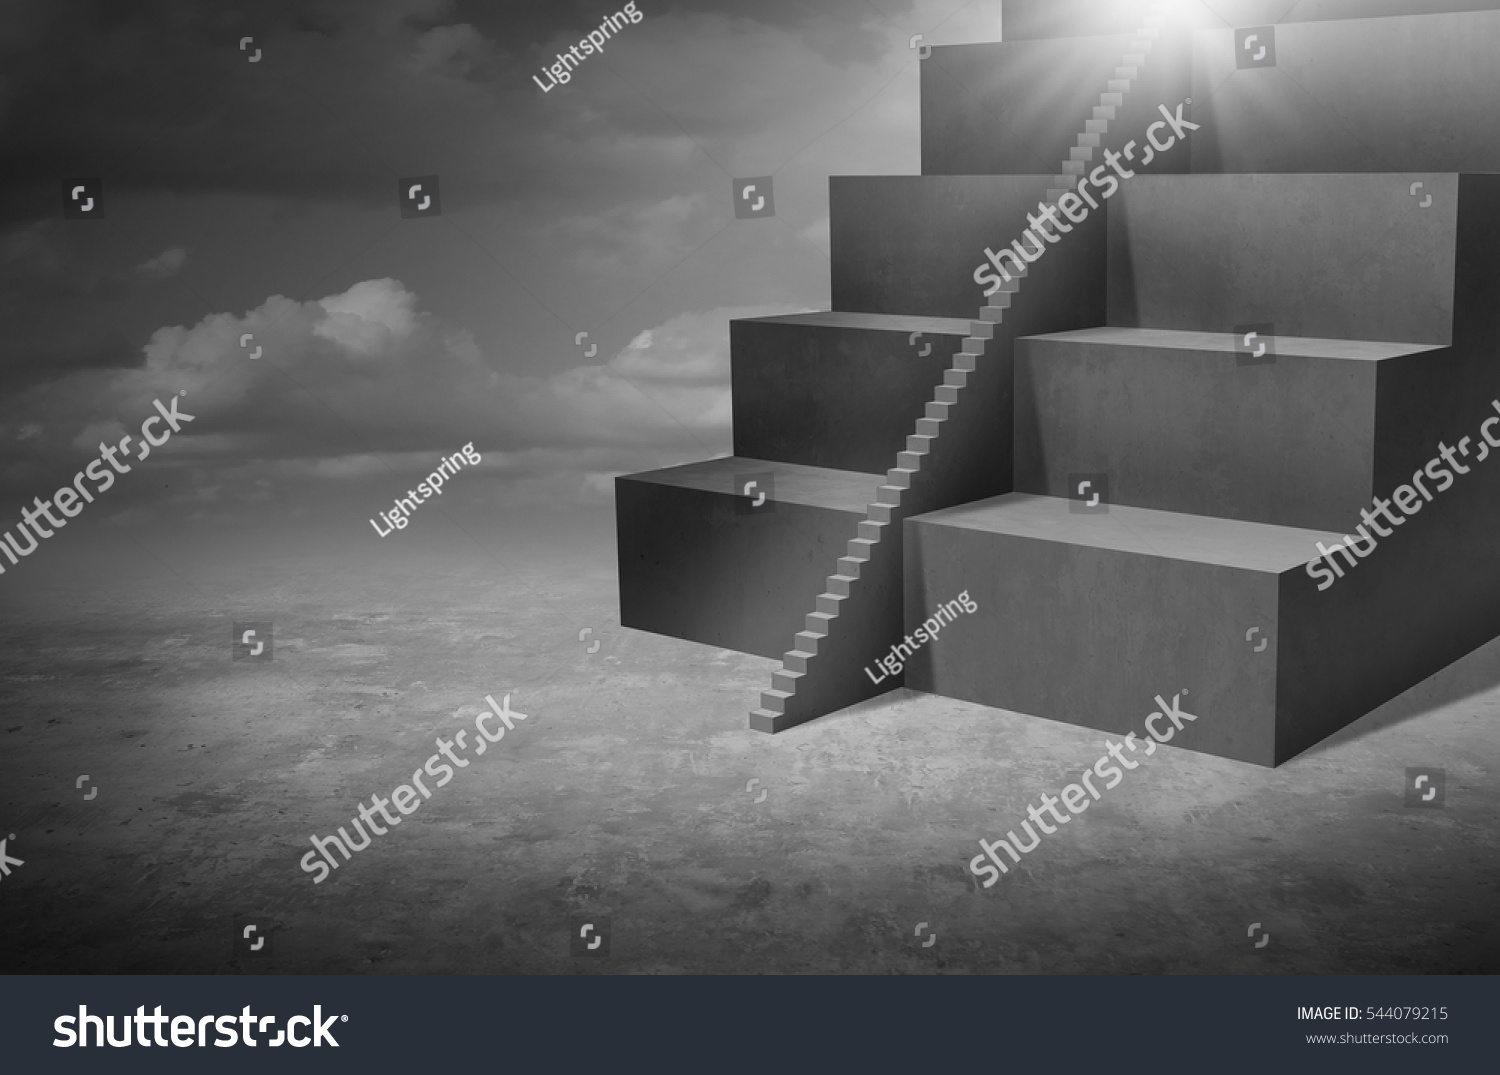 Small business opportunity and solutions as big stairs with tiny staircase as a success pathway for smaller companies or individuals with 3D illustration elements